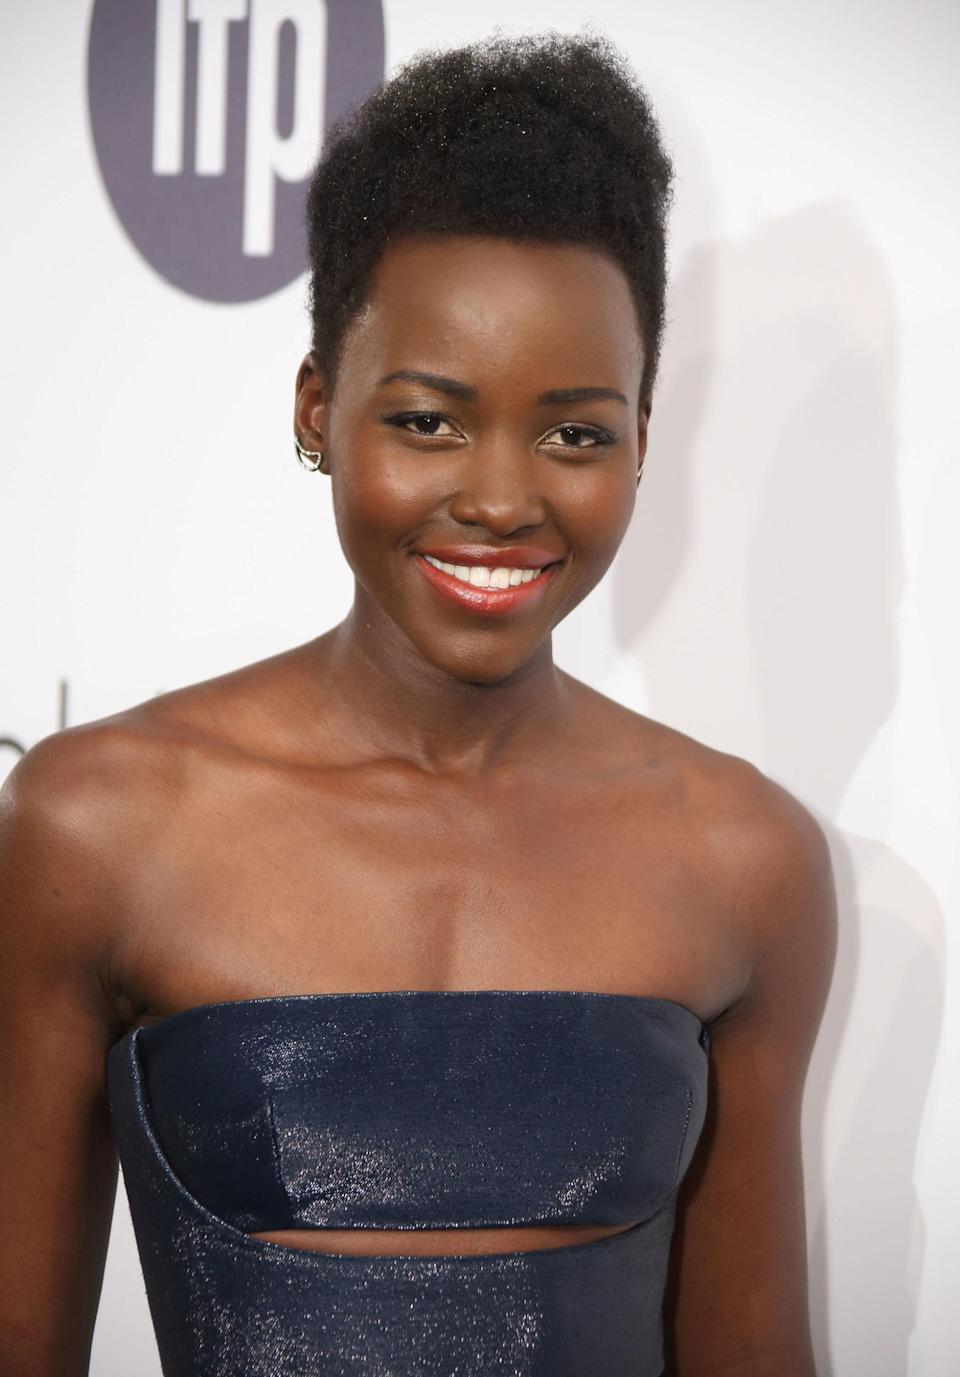 <p>For her turn in <em>12 Years a Slave</em>, Nyong'o won the 2013 Best Supporting Actress Oscar becoming the first African actress to win the award and the first Kenyan actress to win an Oscar of any kind. It also happened to catapult her to the top of every magazine in the world's 'best-dressed' and 'most beautiful' lists, where she has remained ever since.</p>